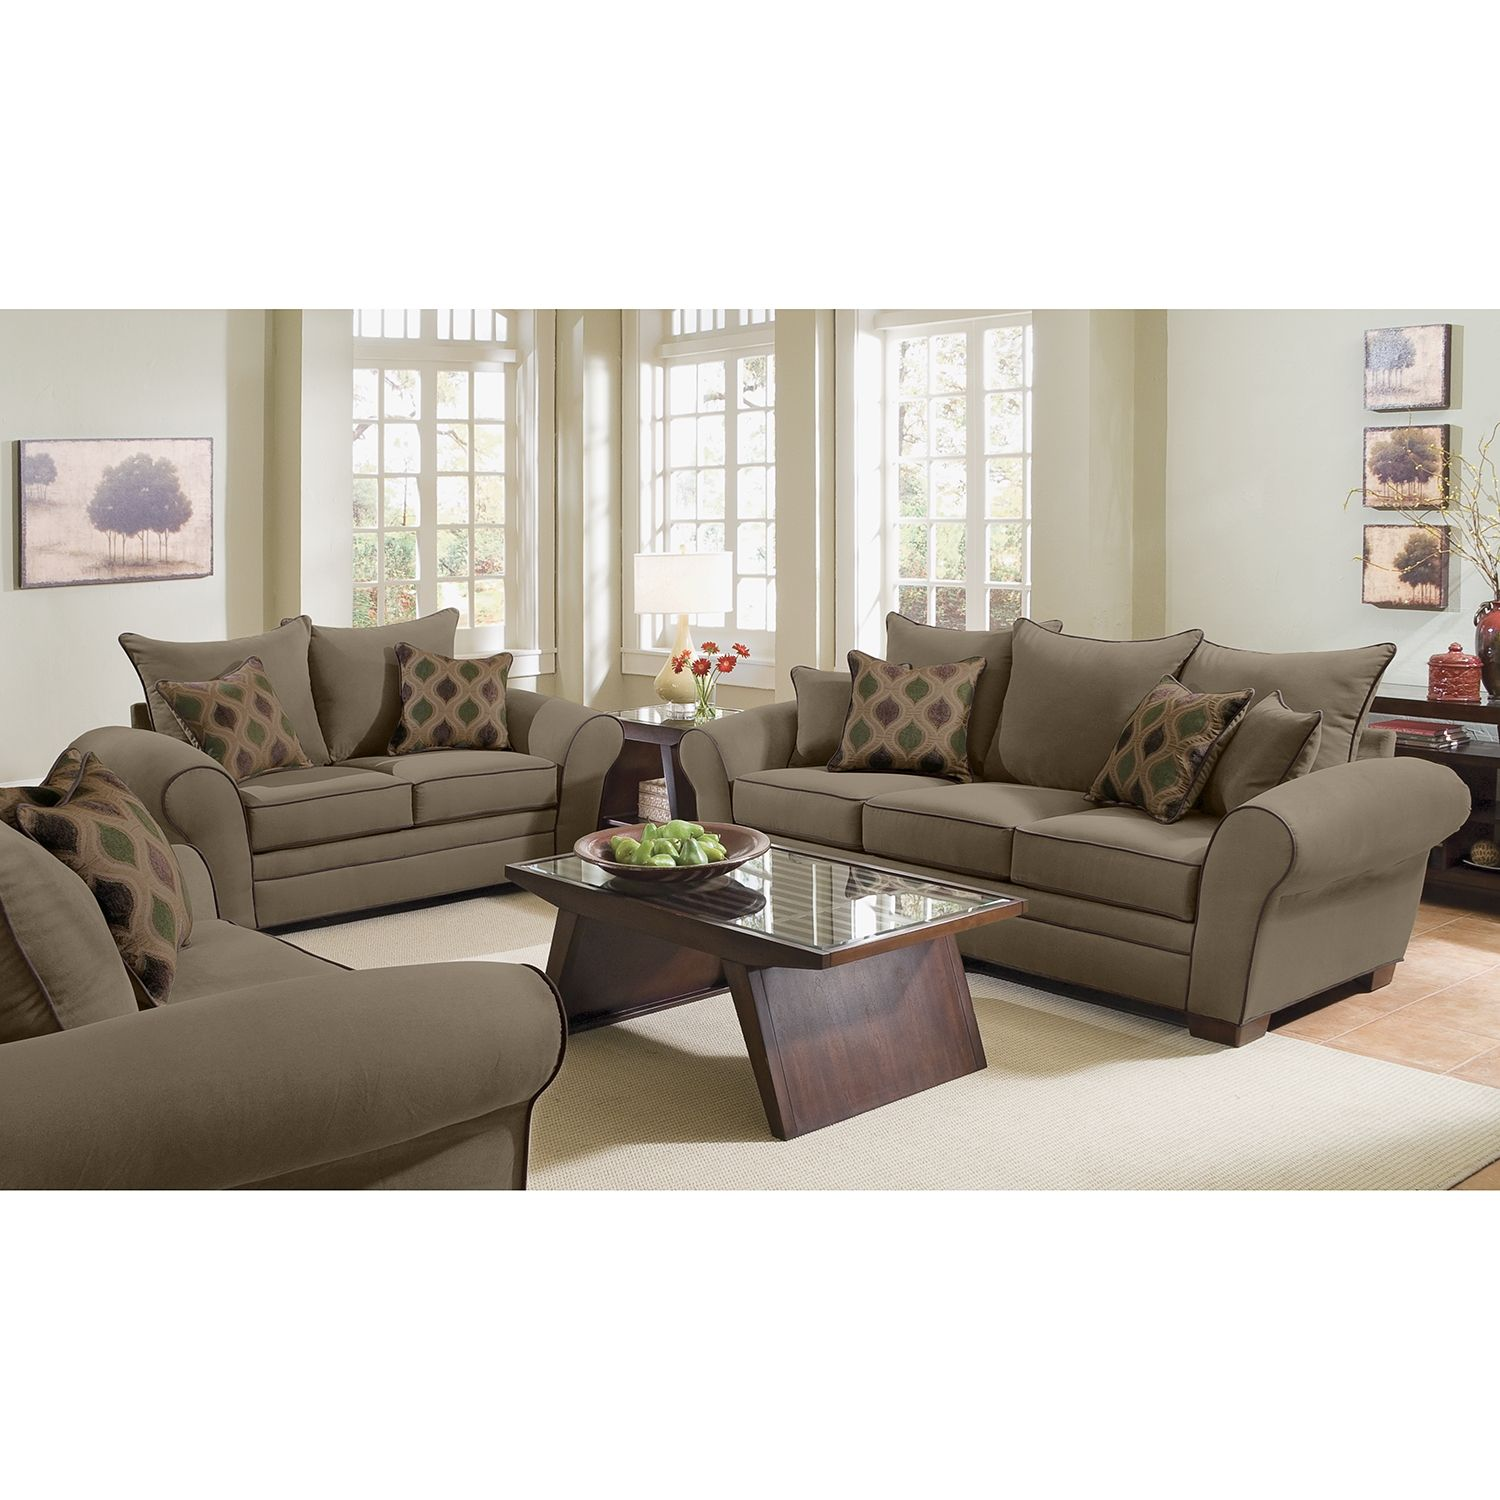 American Signature Living Room Sets Rooms With Grey Leather Couches Rendezvous 2 Pc Furniture